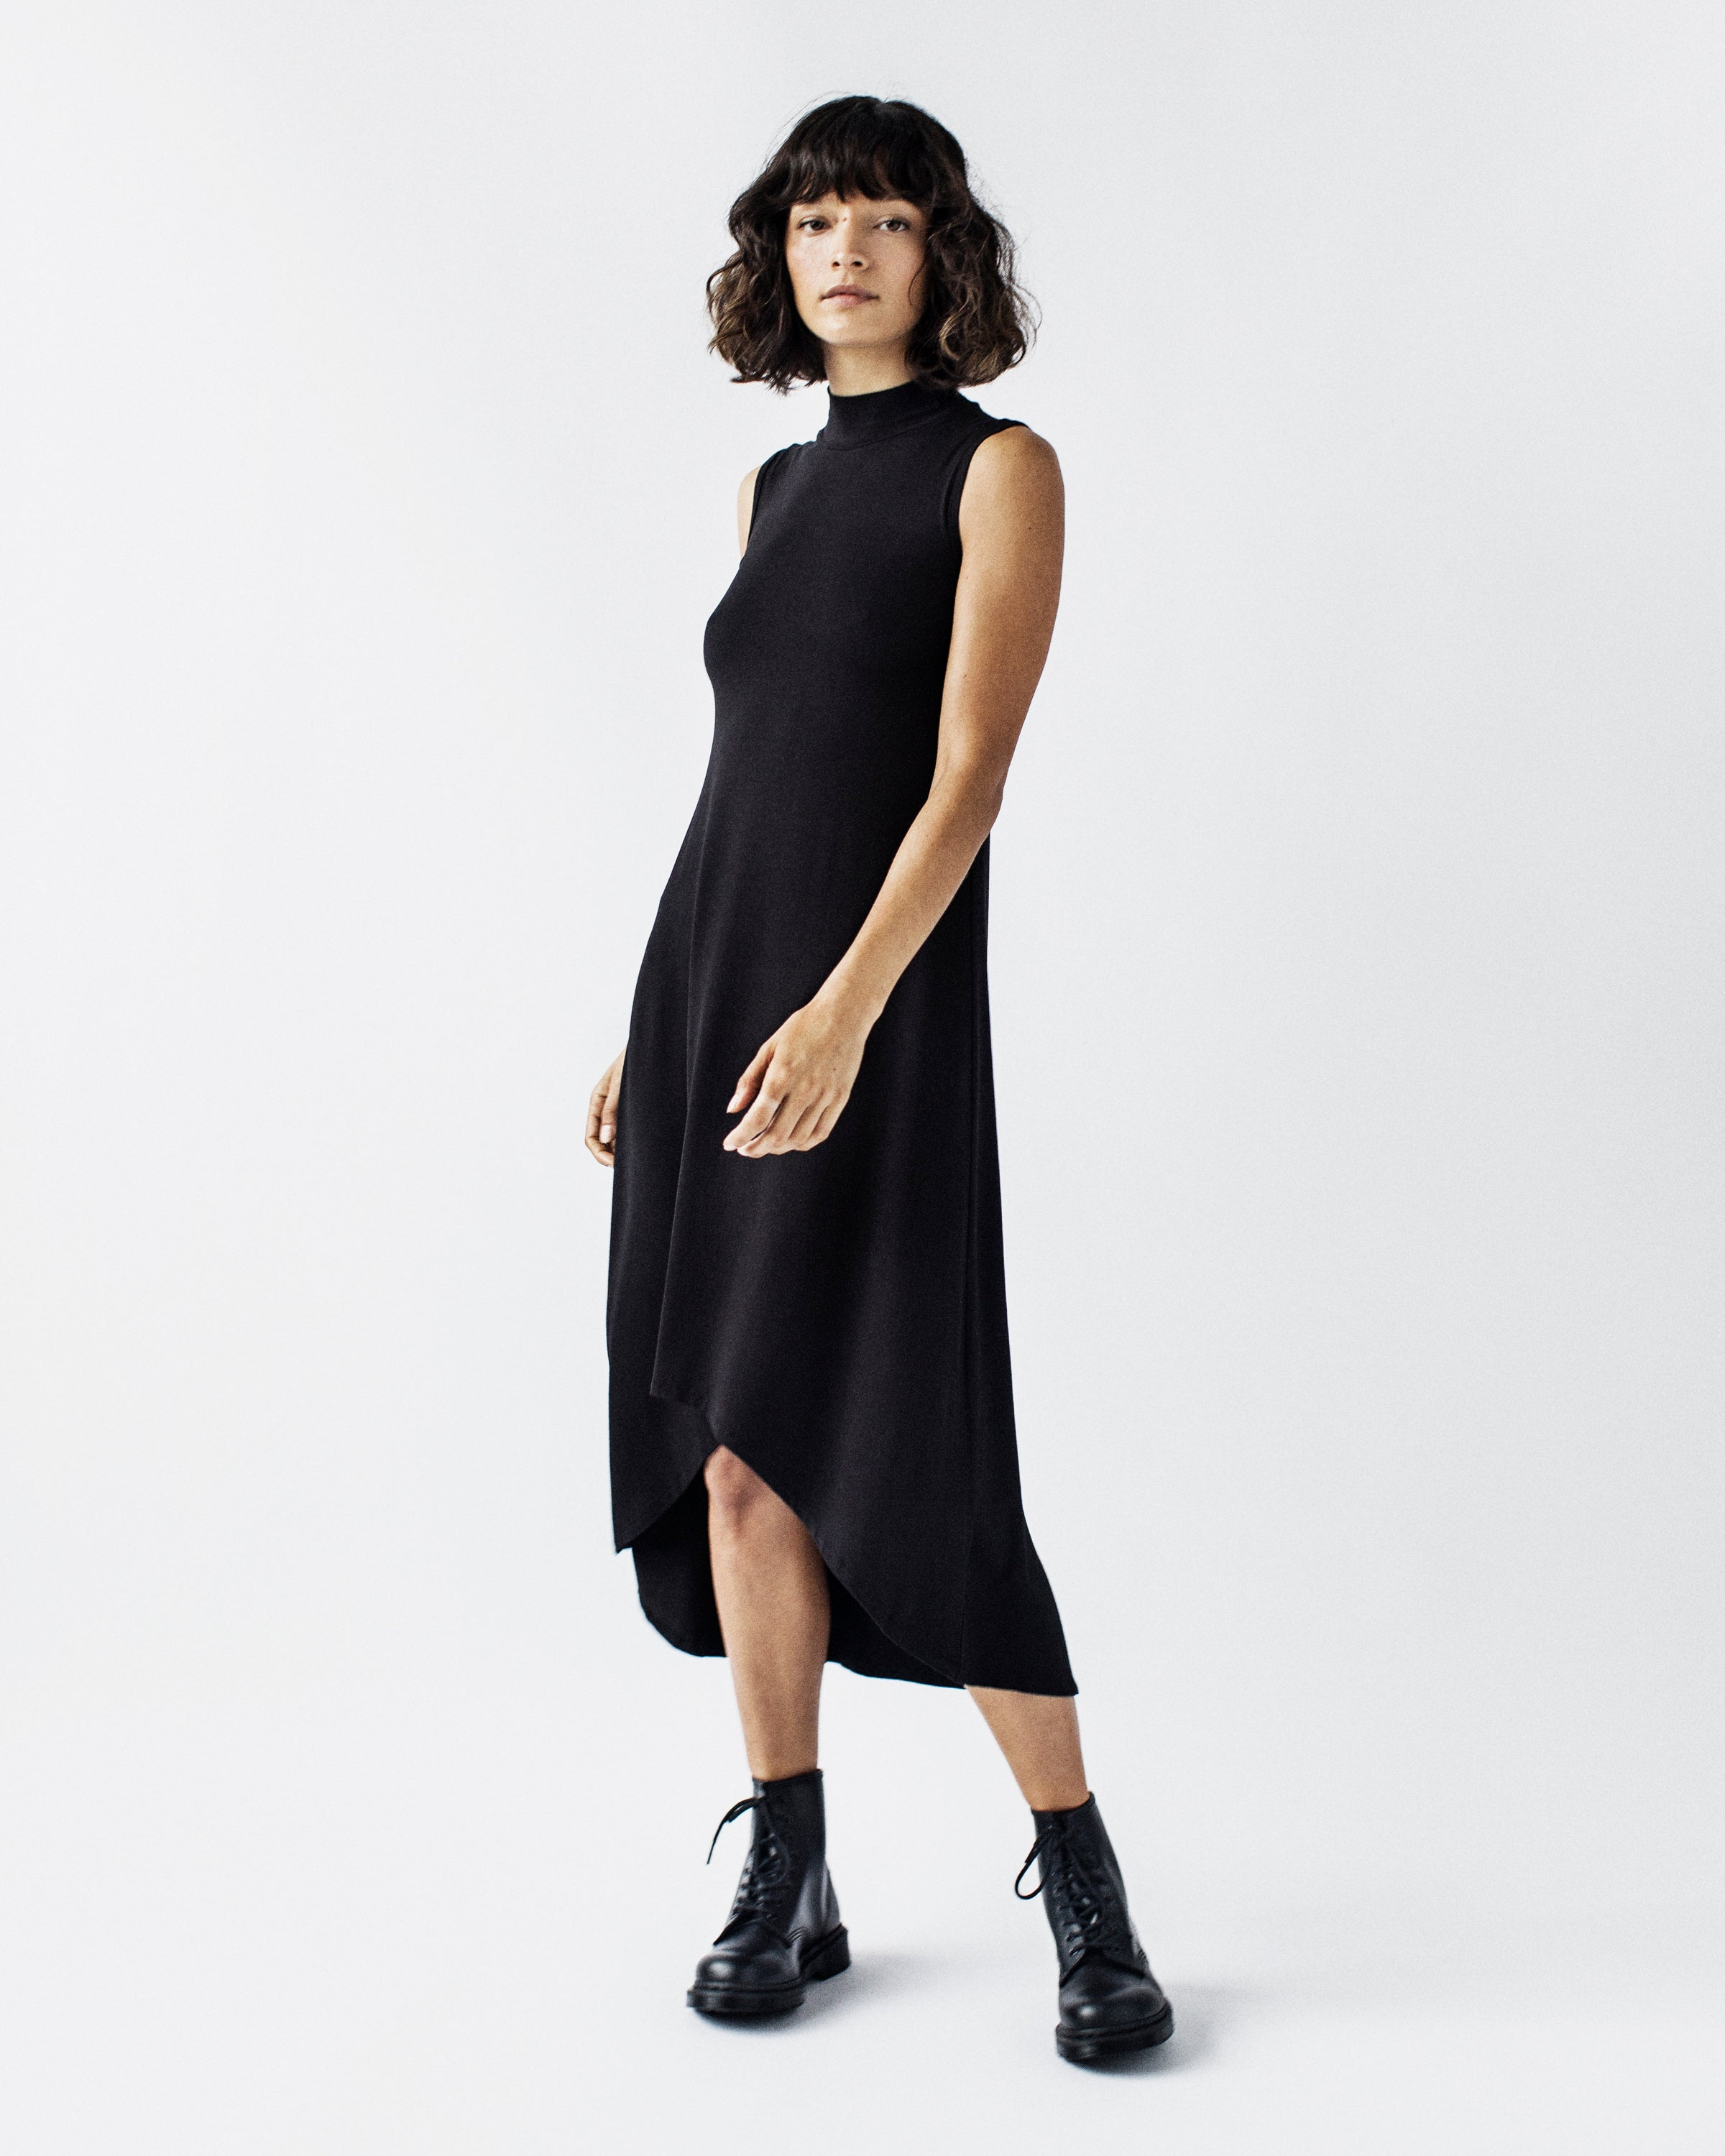 CINDY Sleeveless - Mock Neck, High-Low, A-line, Viscose Jersey Dress